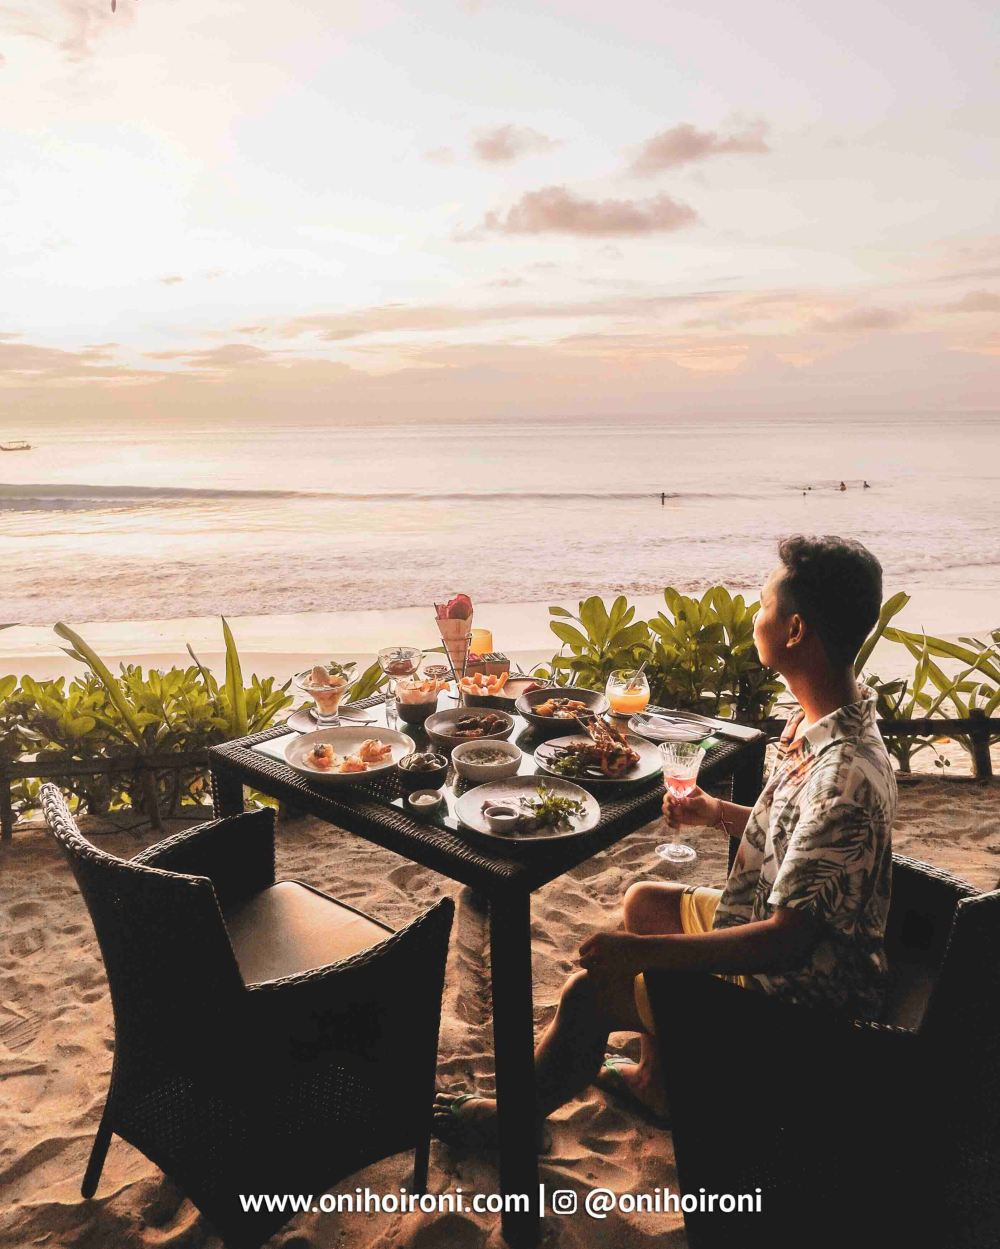 12 Sunset beach bar and grill intercontinental bali resort oni hoironi restaurant di jimbaran copy